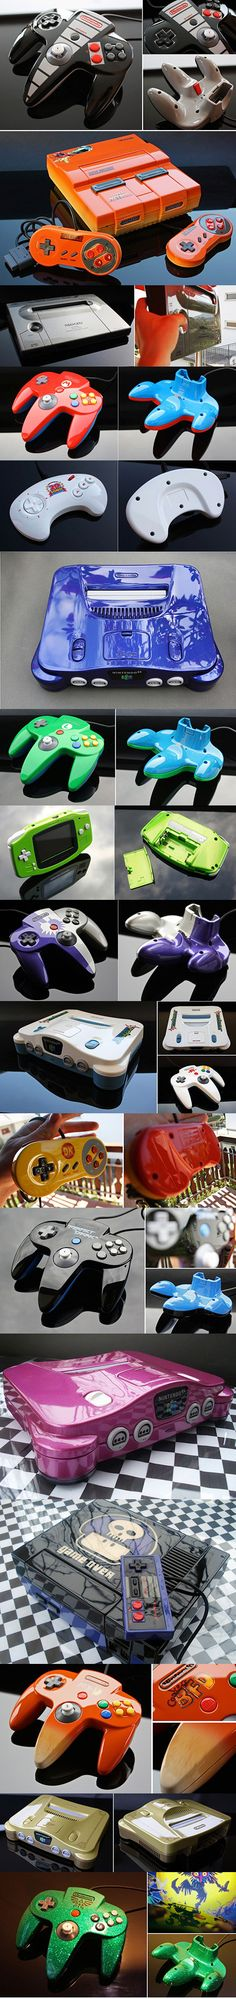 Custom Nintendo device paint jobs